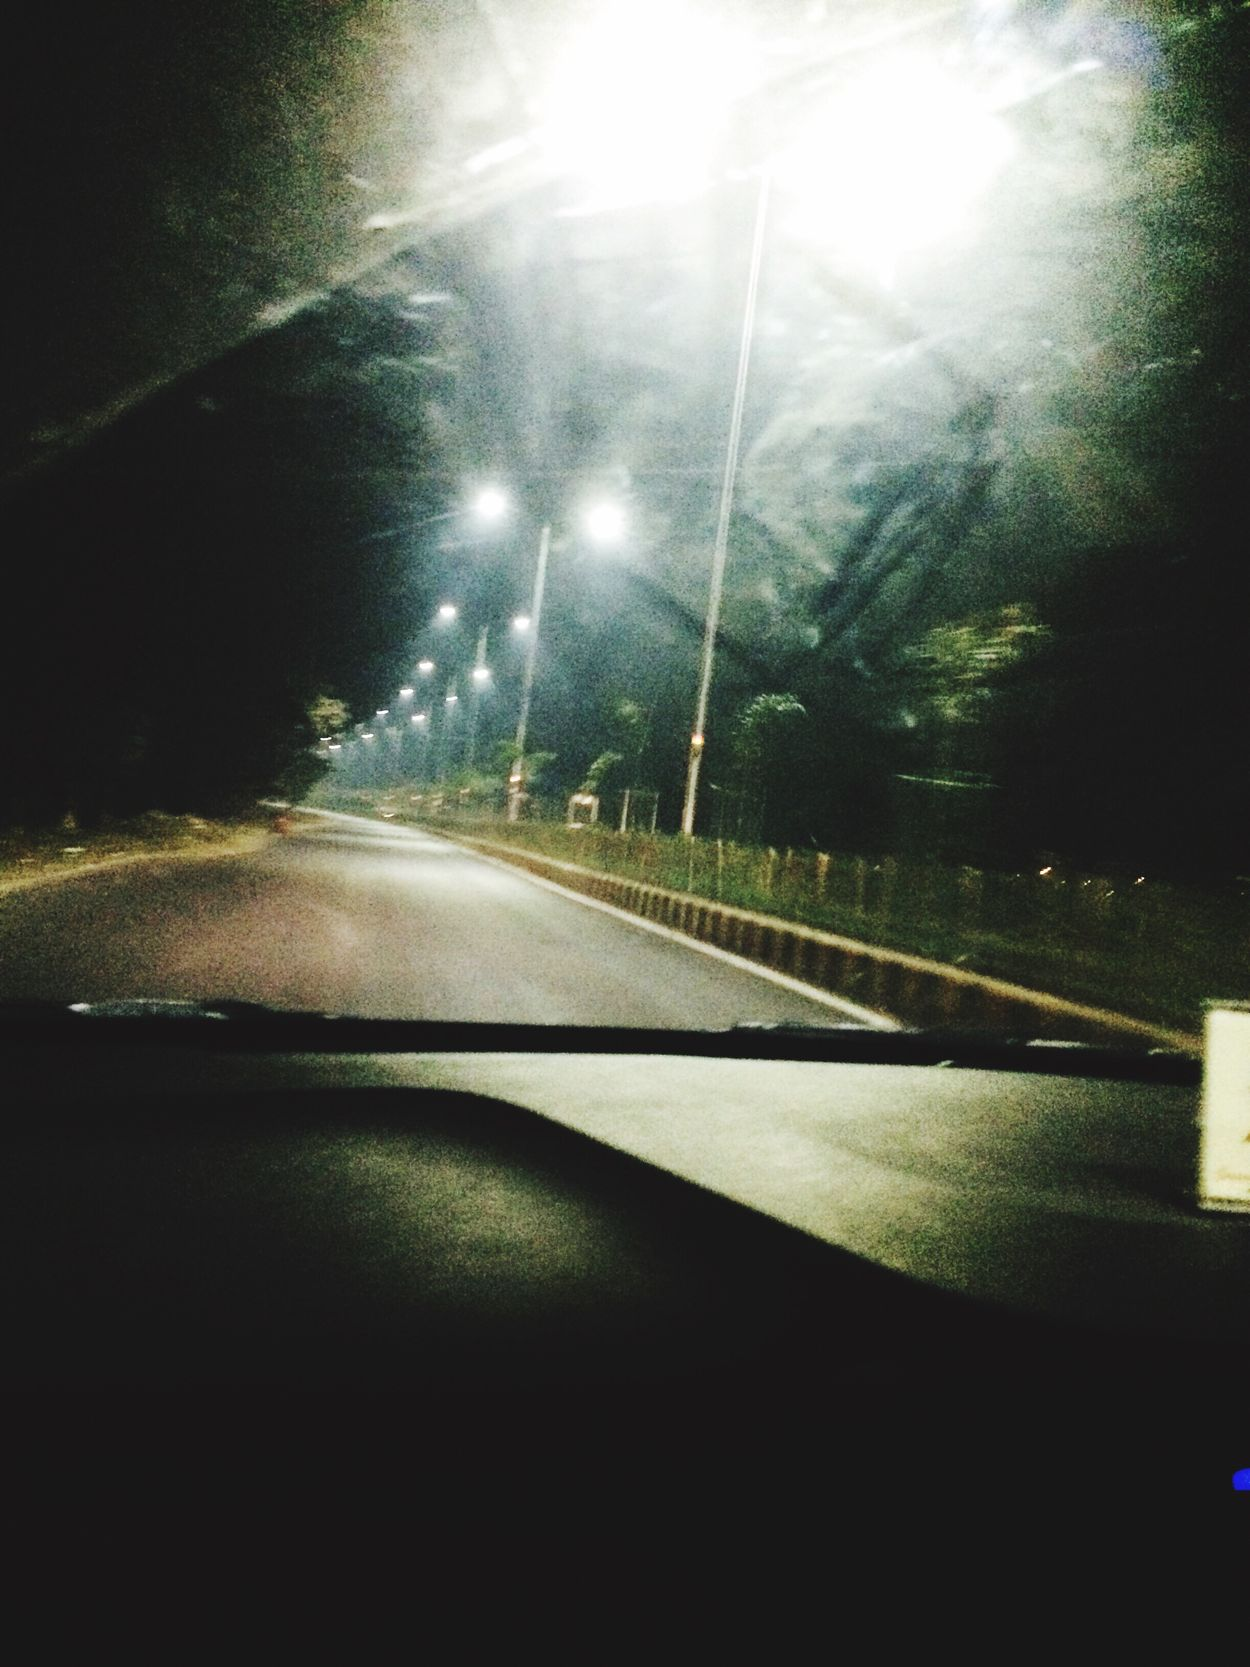 Alone Time Car Lovethispicture EyeEm Keepgoingdontlookback #life Light And Shadow Trying To Find The Light  Night Lights Insearchofpeace Colours Keepgoodgoing